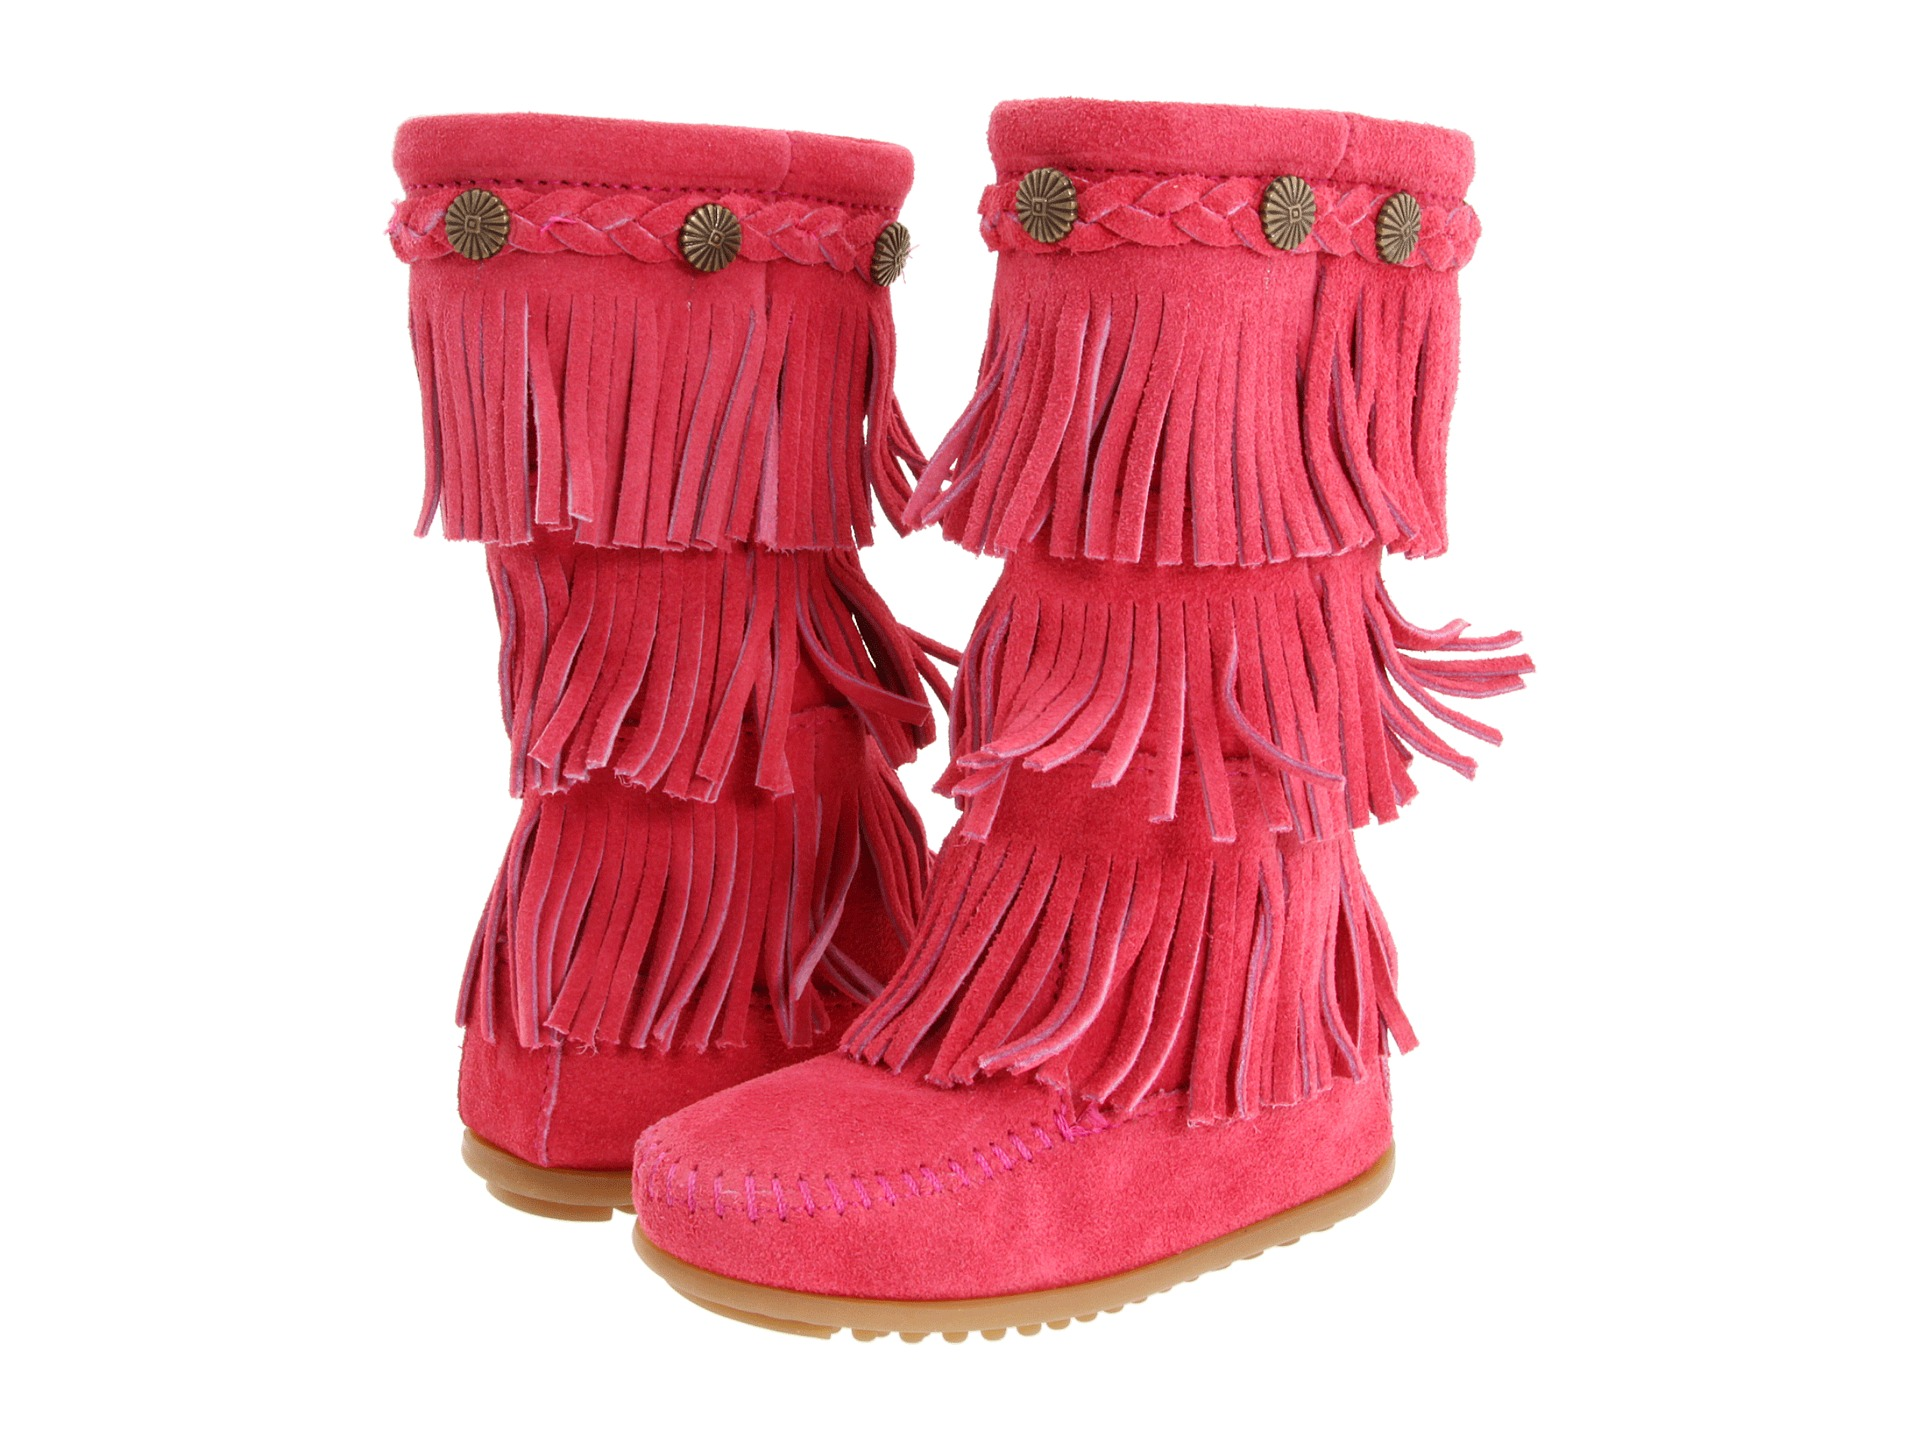 Compare 83 Pink Minnetonka Boots products in Shoes at gravitybox.ga, including Minnetonka Women's Front Lace Hardsole Brown Pink Boot 8 M, Minnetonka Double Fringe Side Zip Girls' Toddler-Youth Pink Slip On 8 Toddler M, Minnetonka Double Fringe Side Zip Girls' Toddler-Youth Pink Slip On 2 .